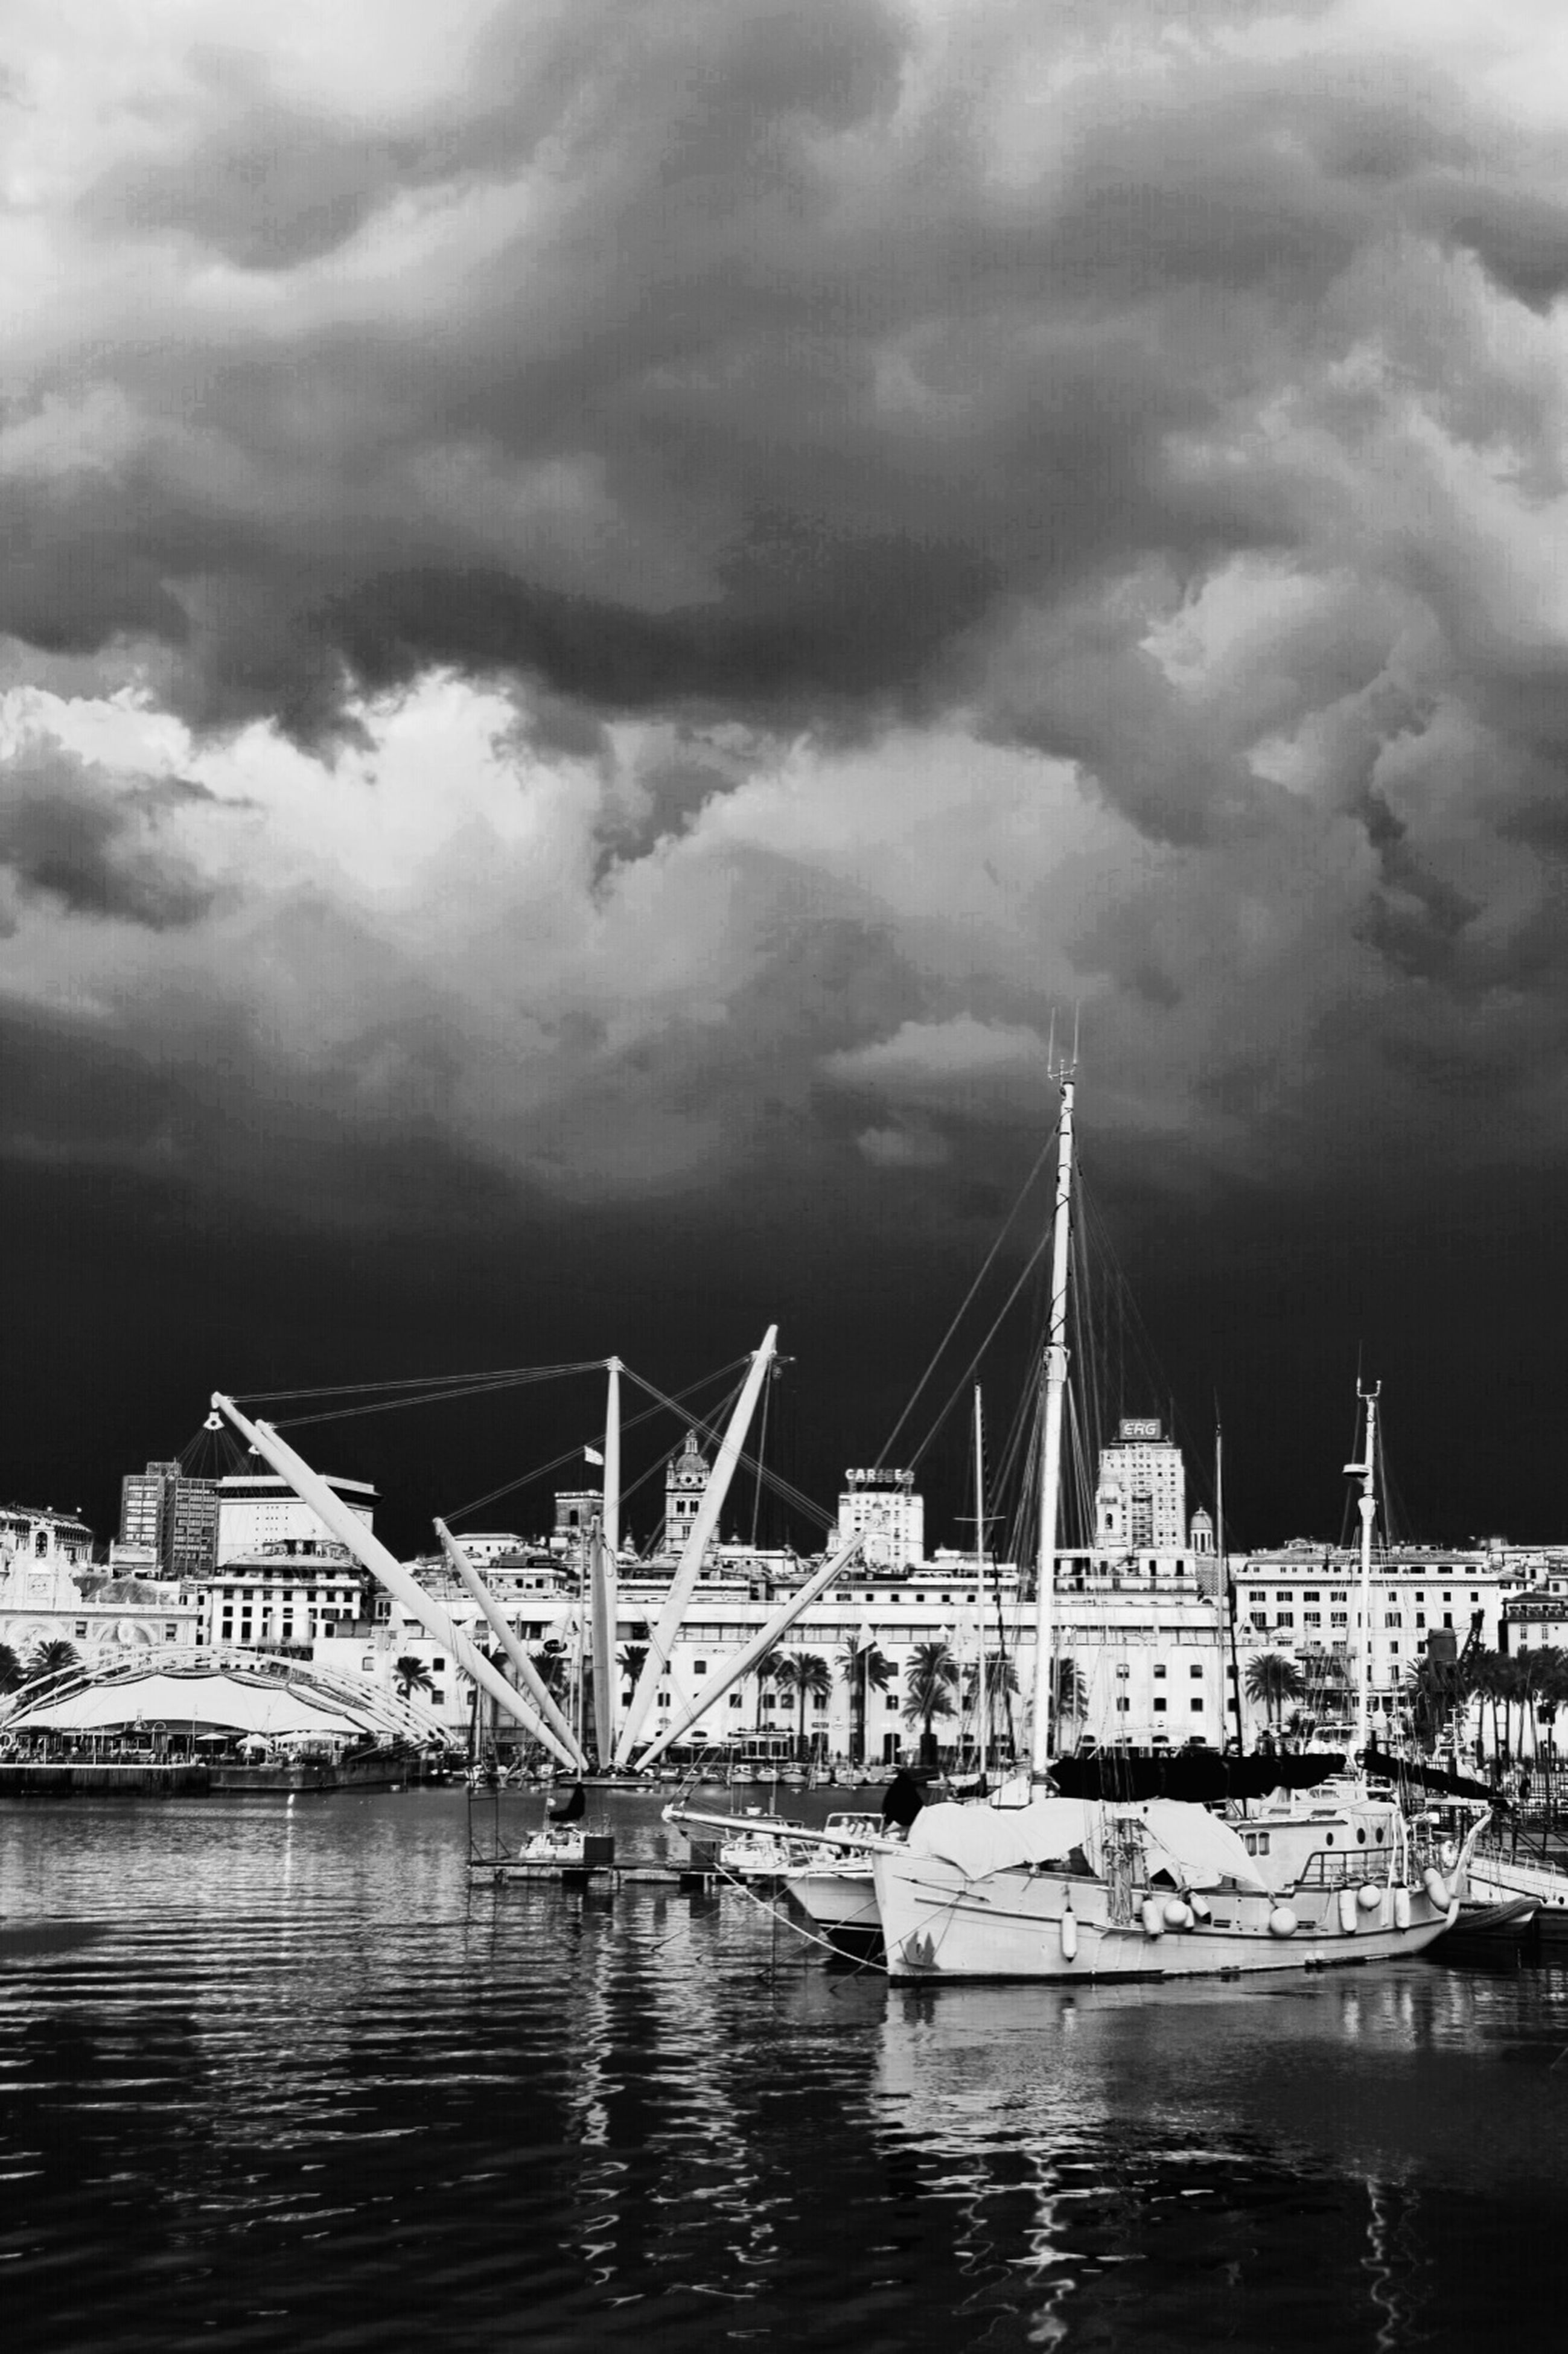 water, waterfront, architecture, built structure, nautical vessel, sky, transportation, cloud - sky, building exterior, mode of transport, cloudy, river, boat, moored, overcast, city, cloud, rippled, weather, bridge - man made structure